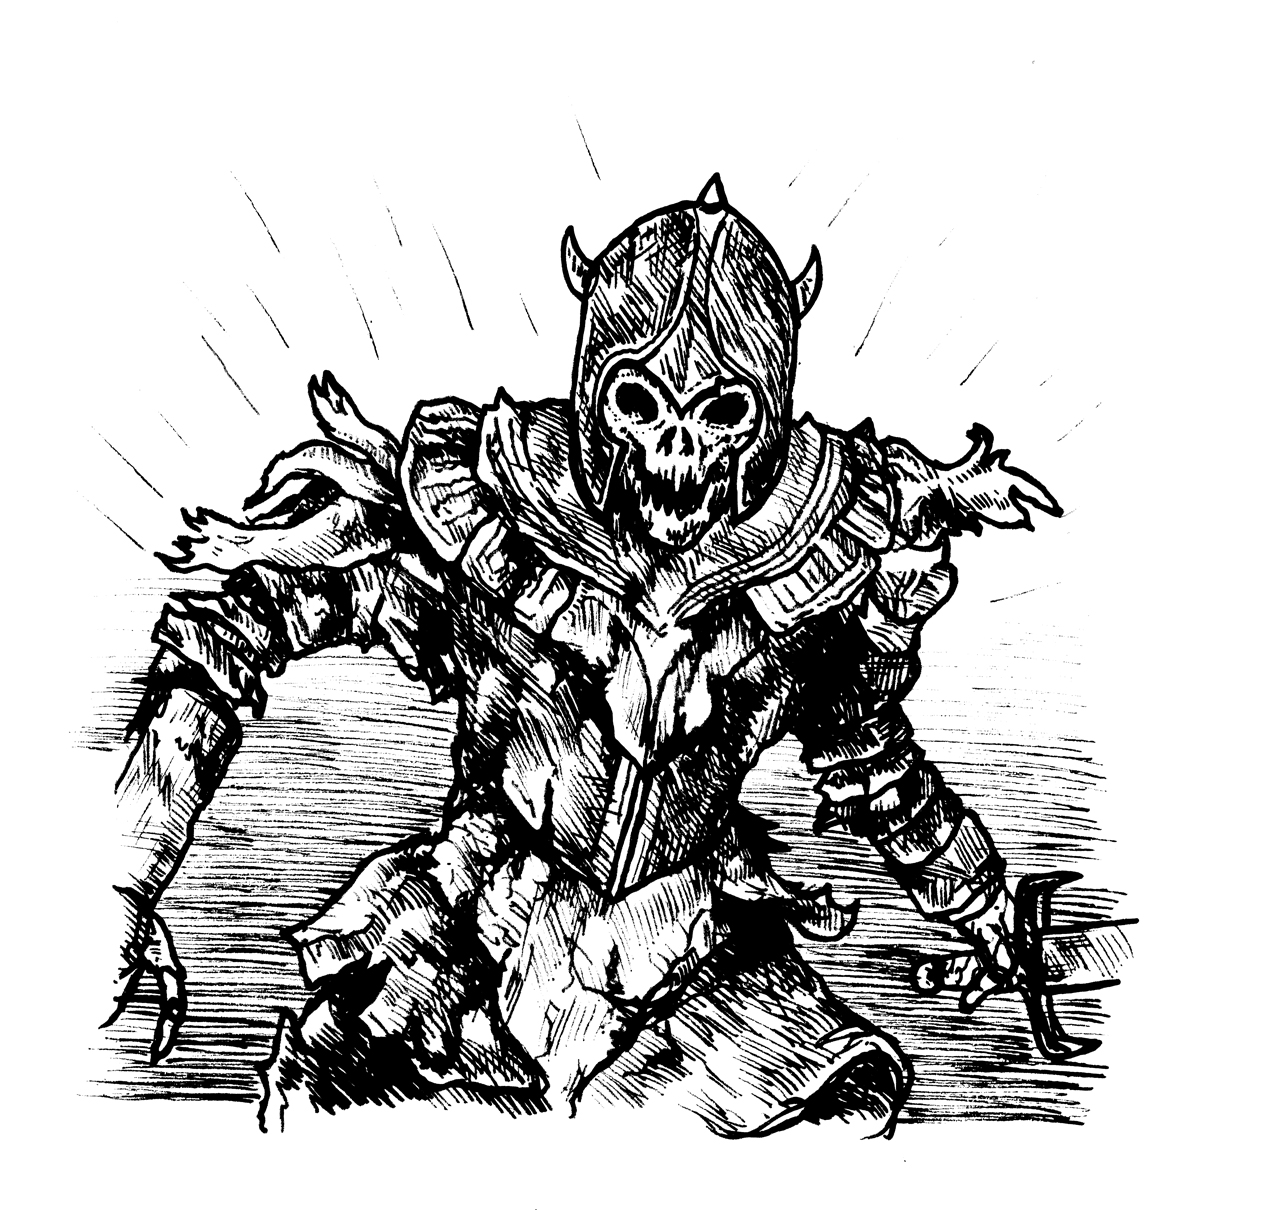 Skeleton Giant Illustration b+w Escape the Dark Castle Chapter Card art